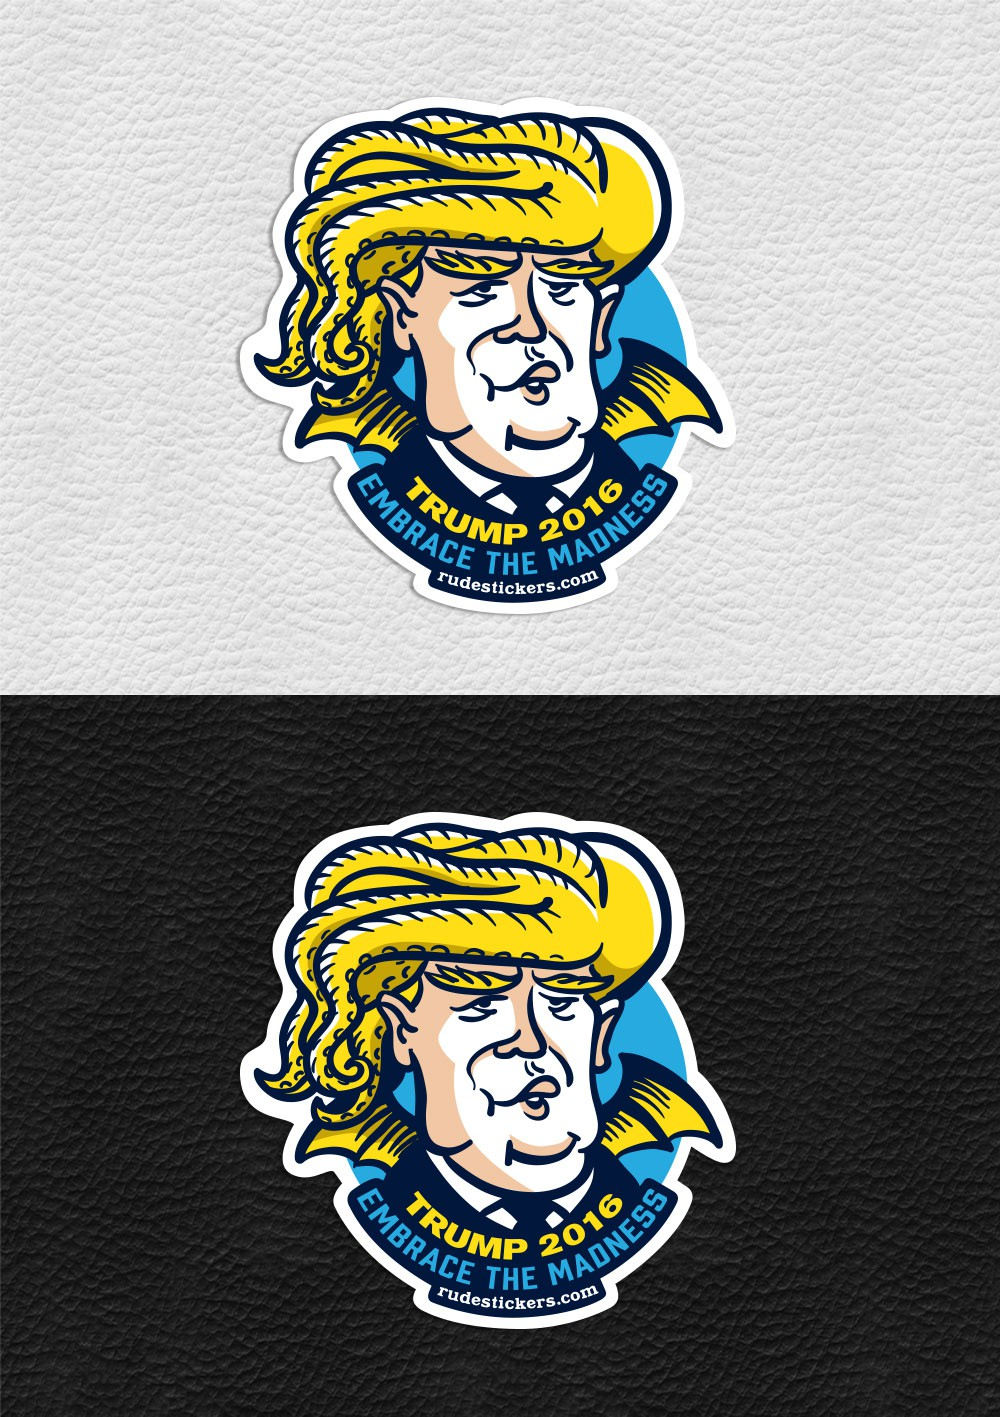 Create a humorous sticker design of Trump as Cthulhu for Rude Stickers.